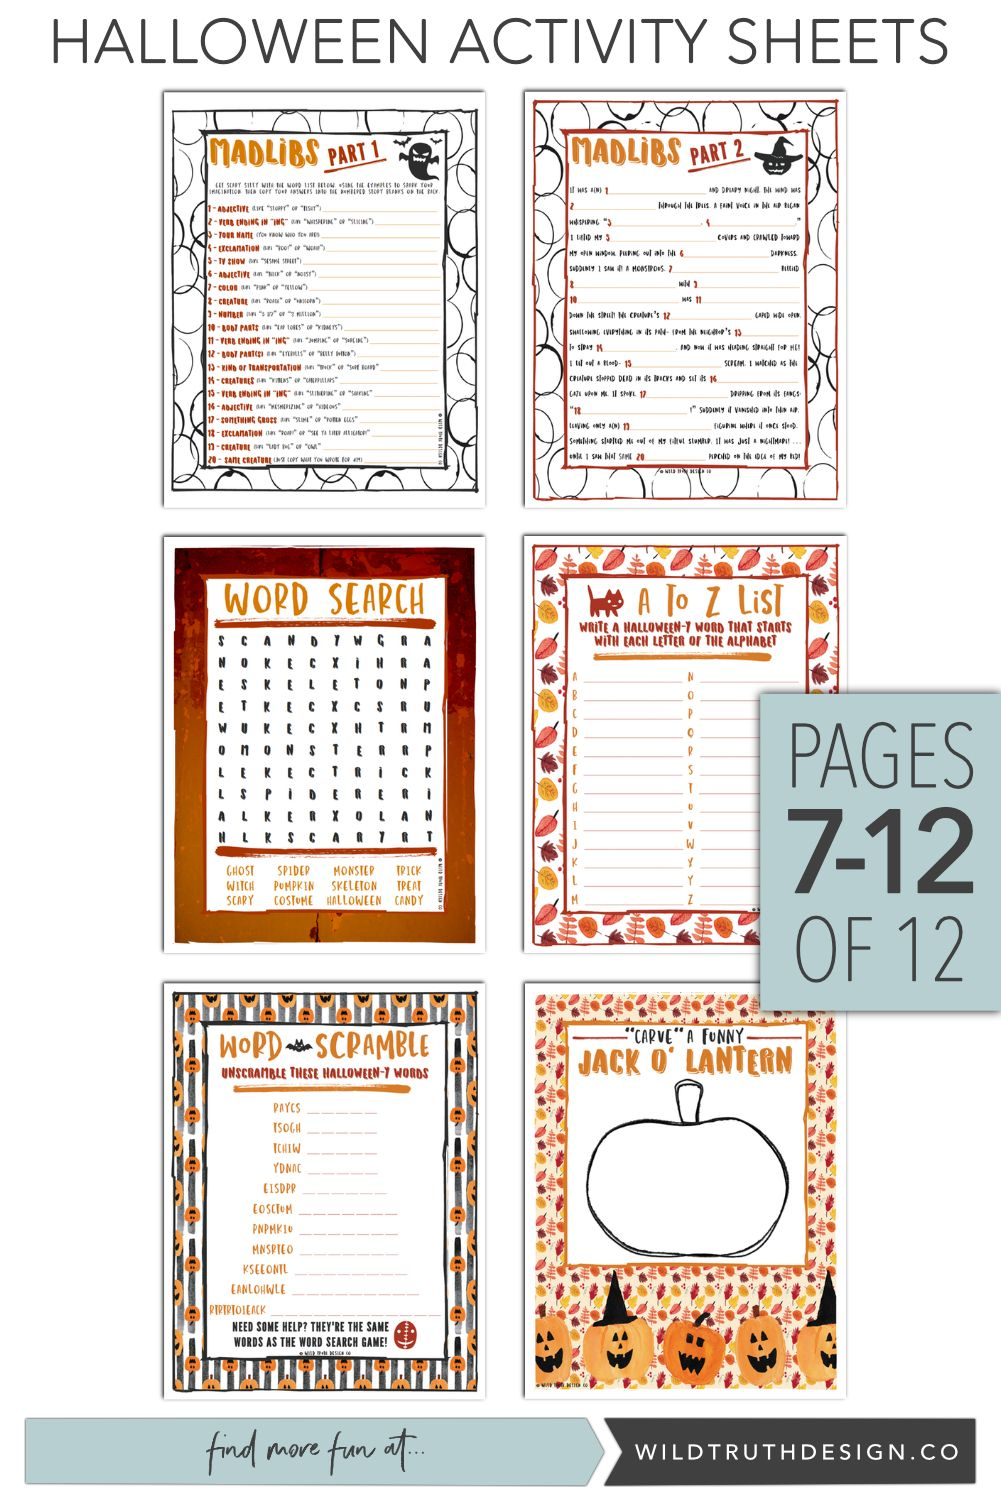 Pin on Printable Party Games WildTruthDesign.Co